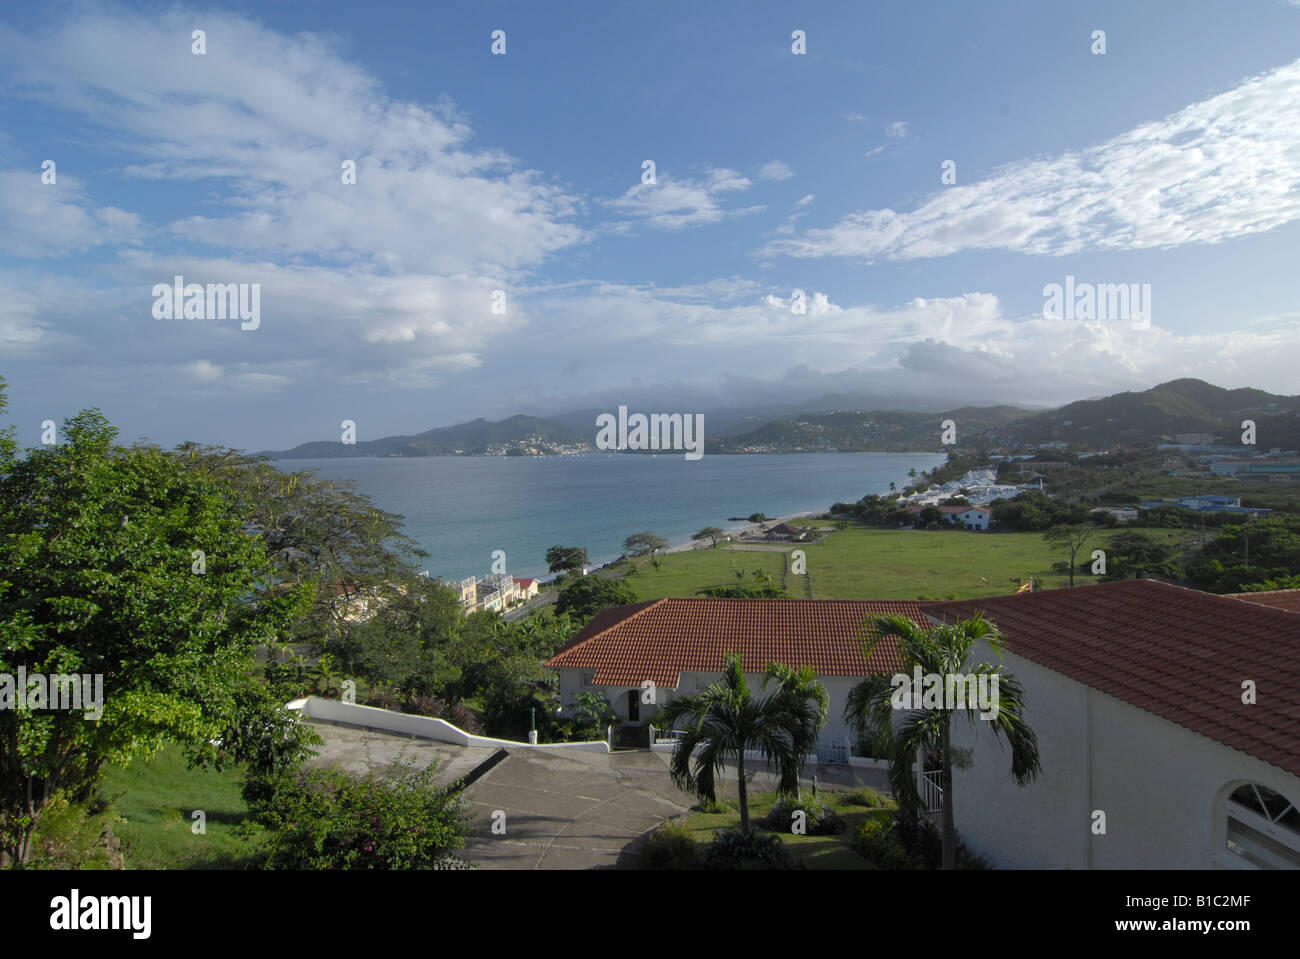 geography / travel, Grenada, landscapes, view from Mount Cinnamon Hotel towards the island, Additional-Rights-Clearance - Stock Image